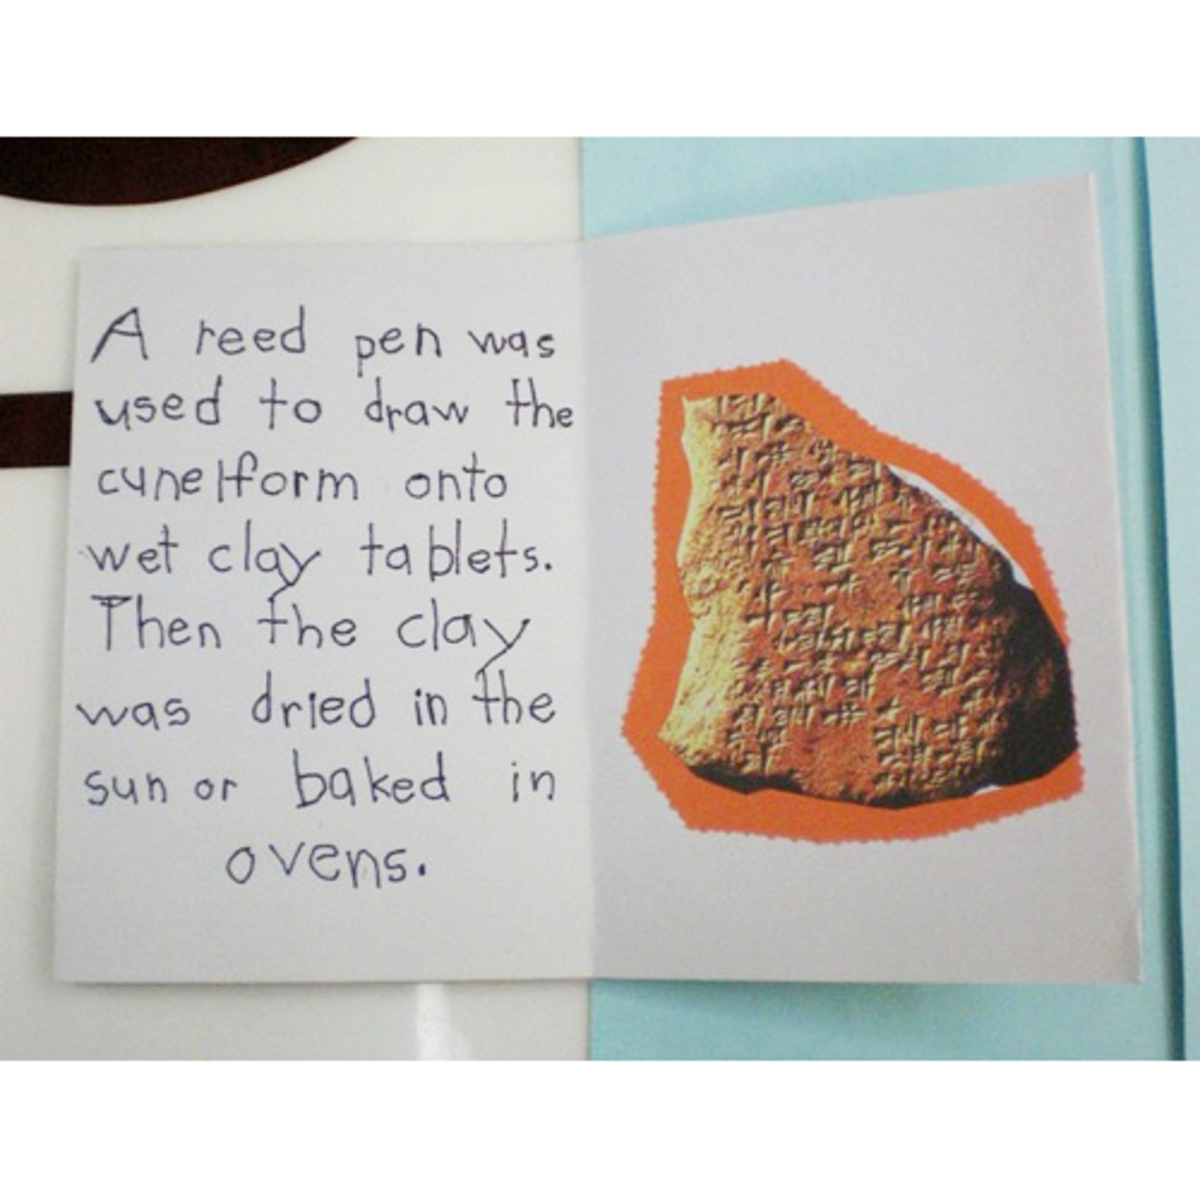 inside the one page book about cuneiform